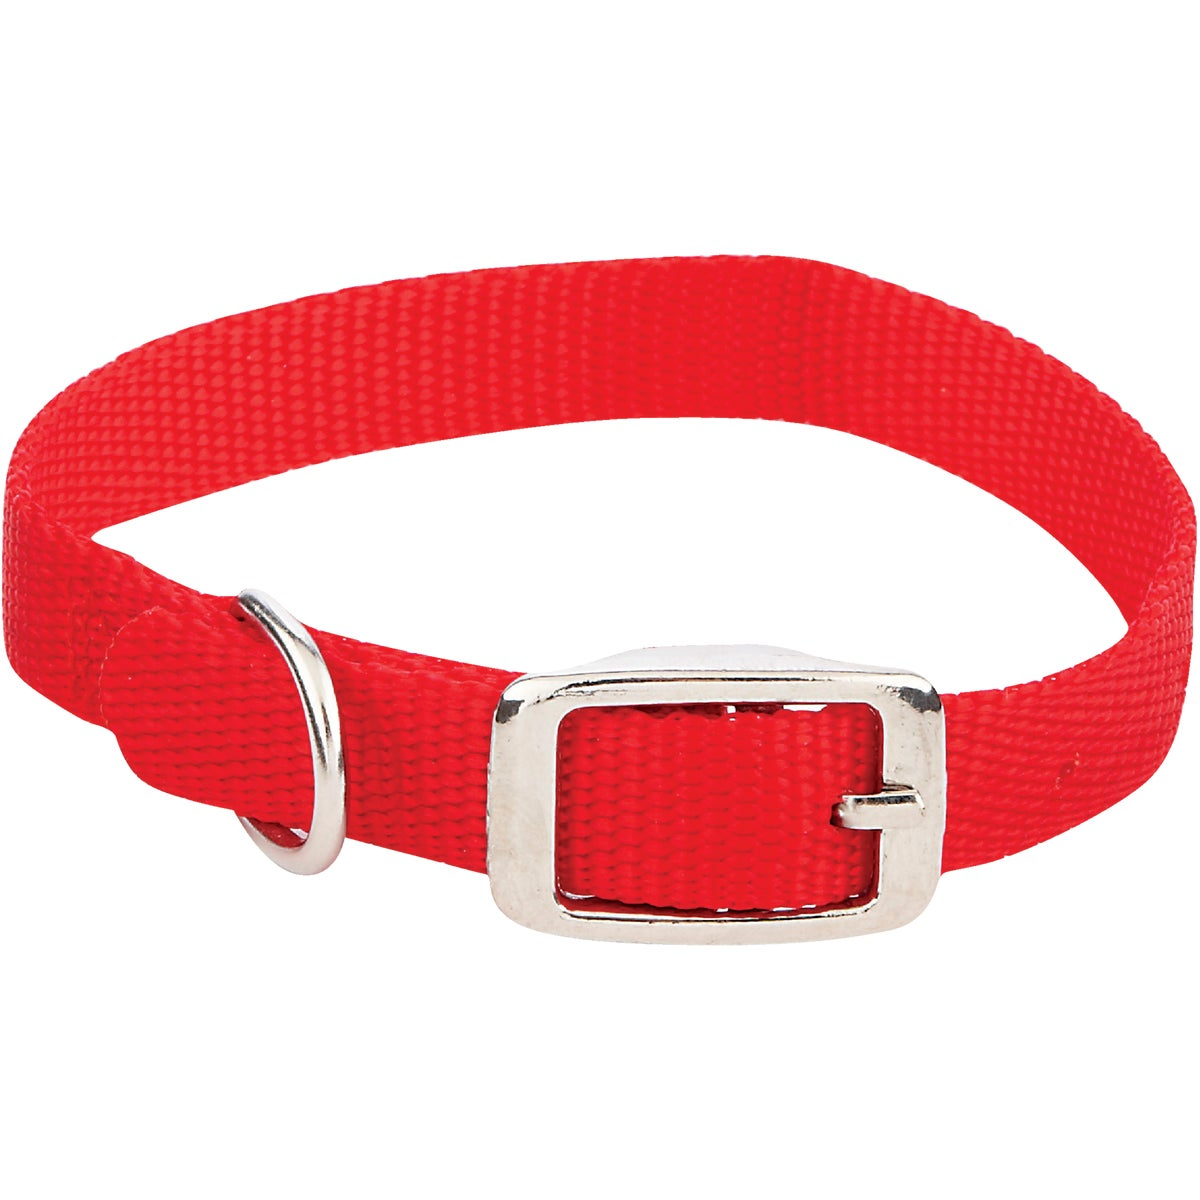 5/8X14 NYLON COLLAR - 31414 by Westminster Pet